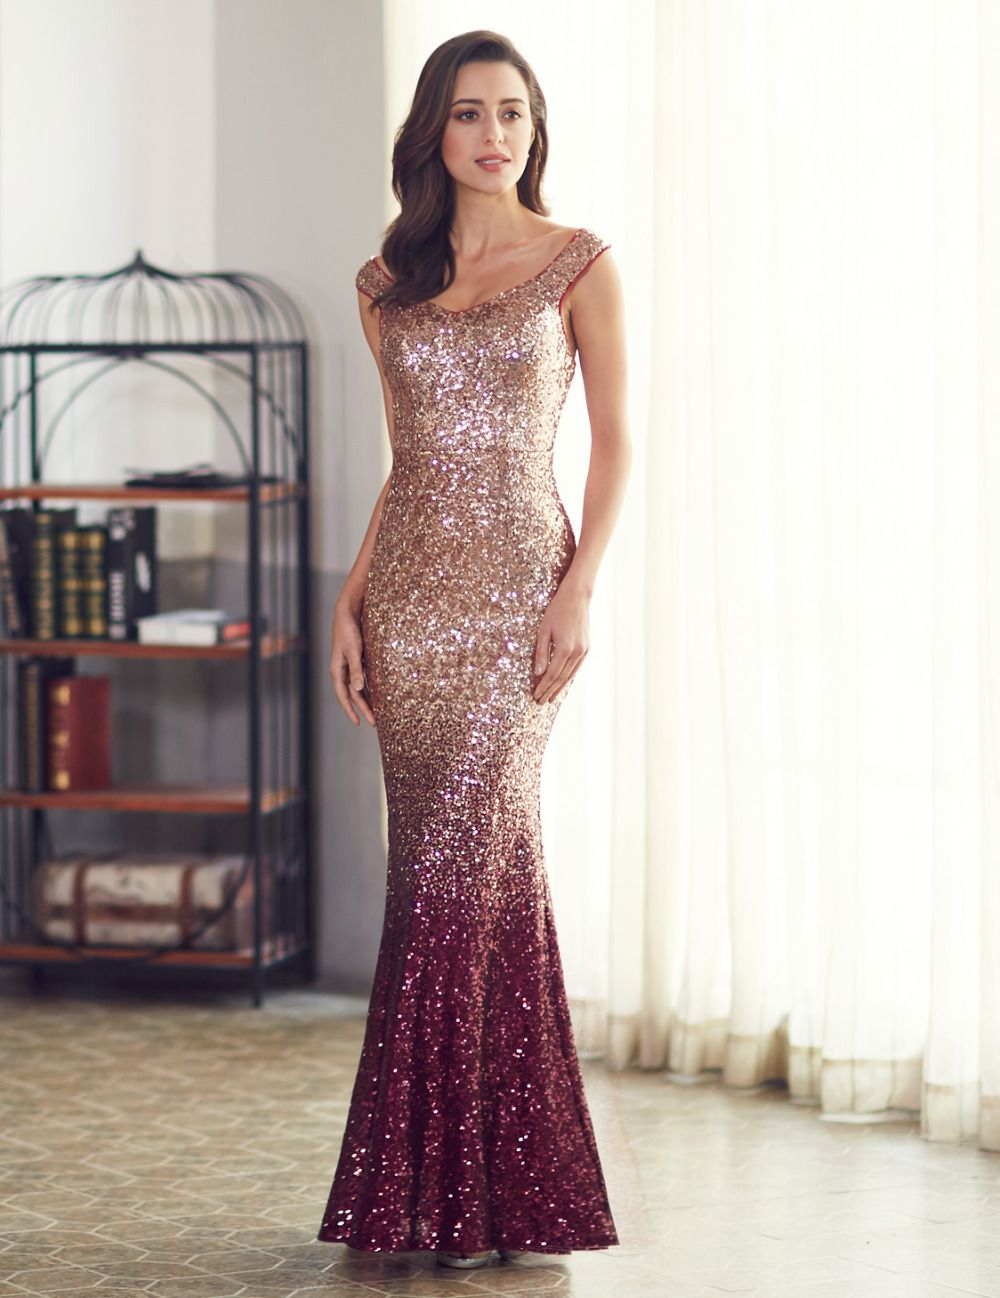 48569a7a173 Long Sparkle Evening Party Dress Ever Pretty 2017 New V Neck Women Elegant  EP08999 Sequin Mermaid